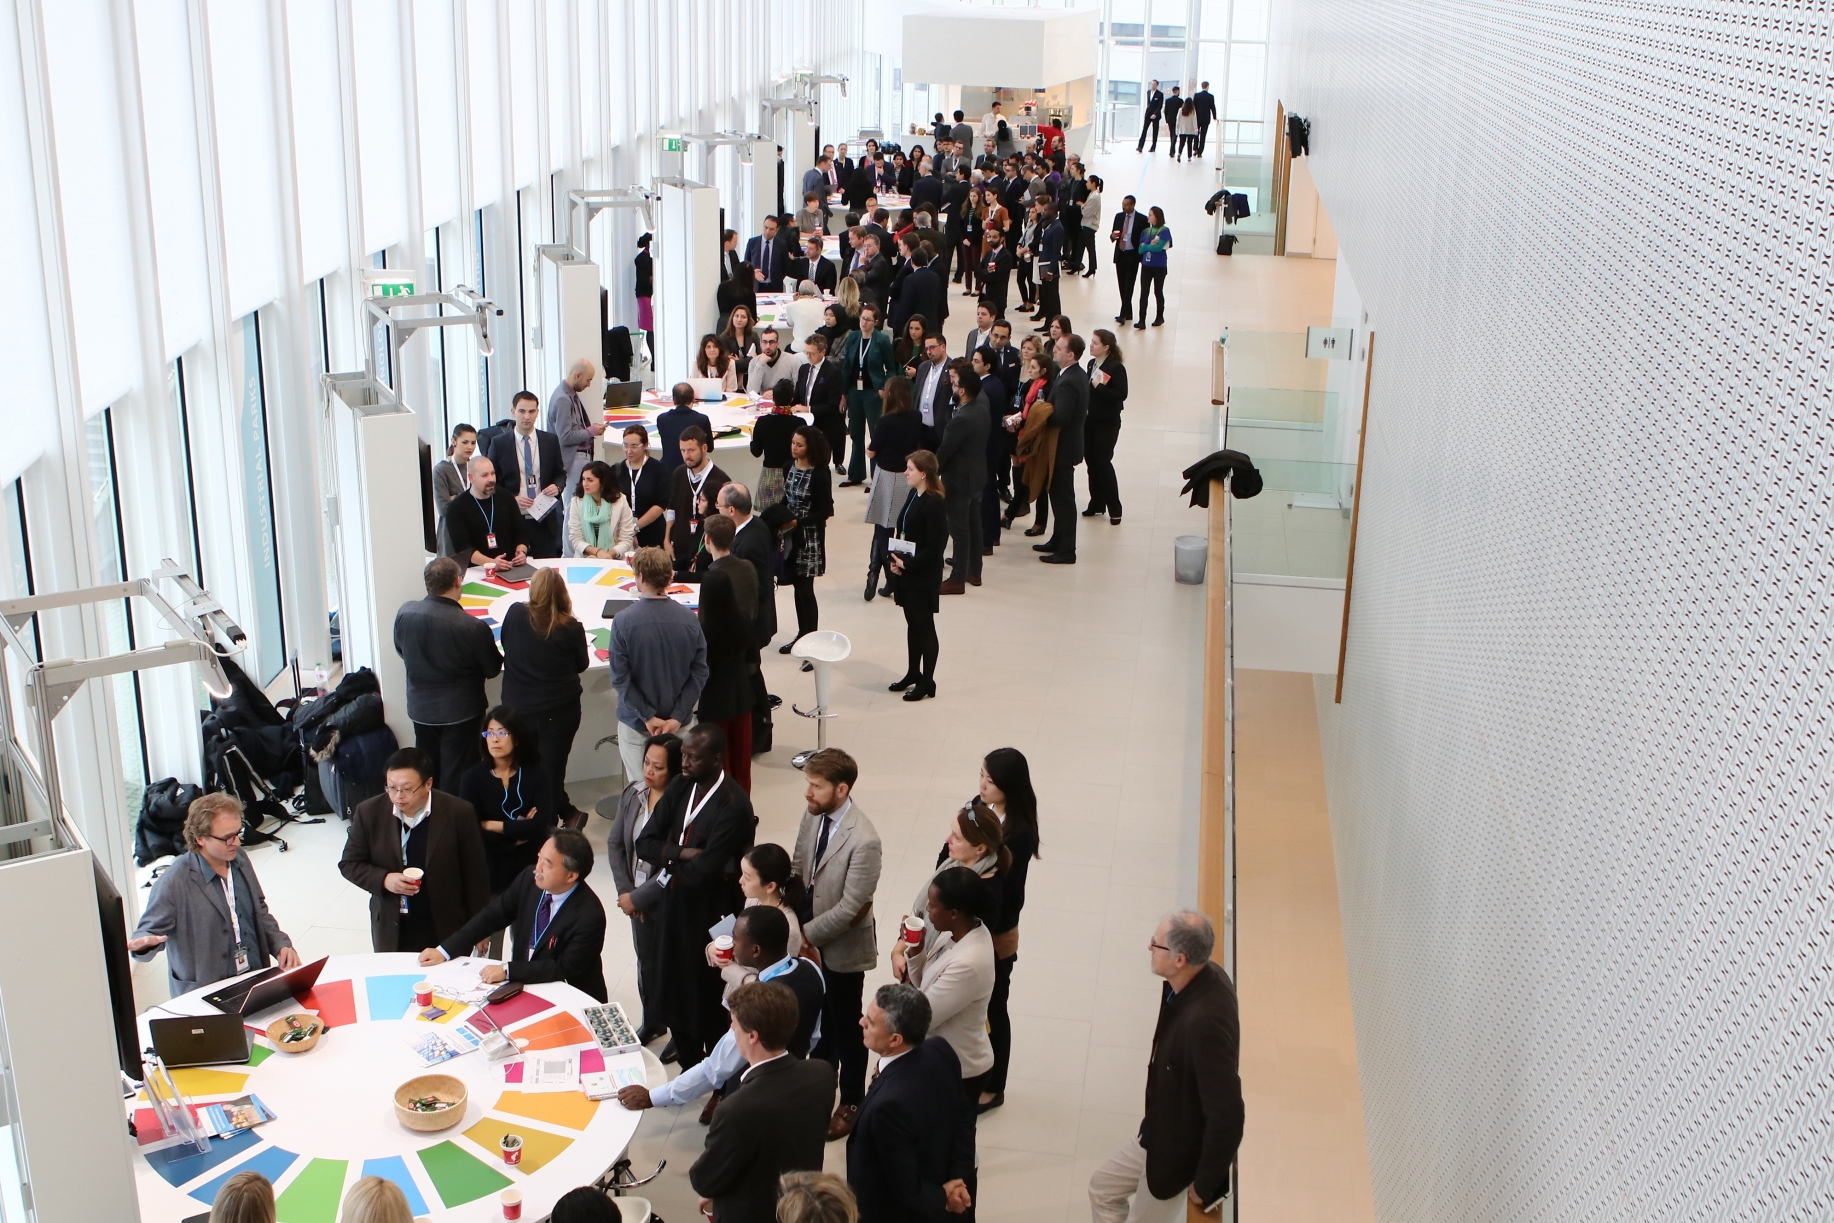 UNIDO's EXPO engages participants in lively exchange of ideas